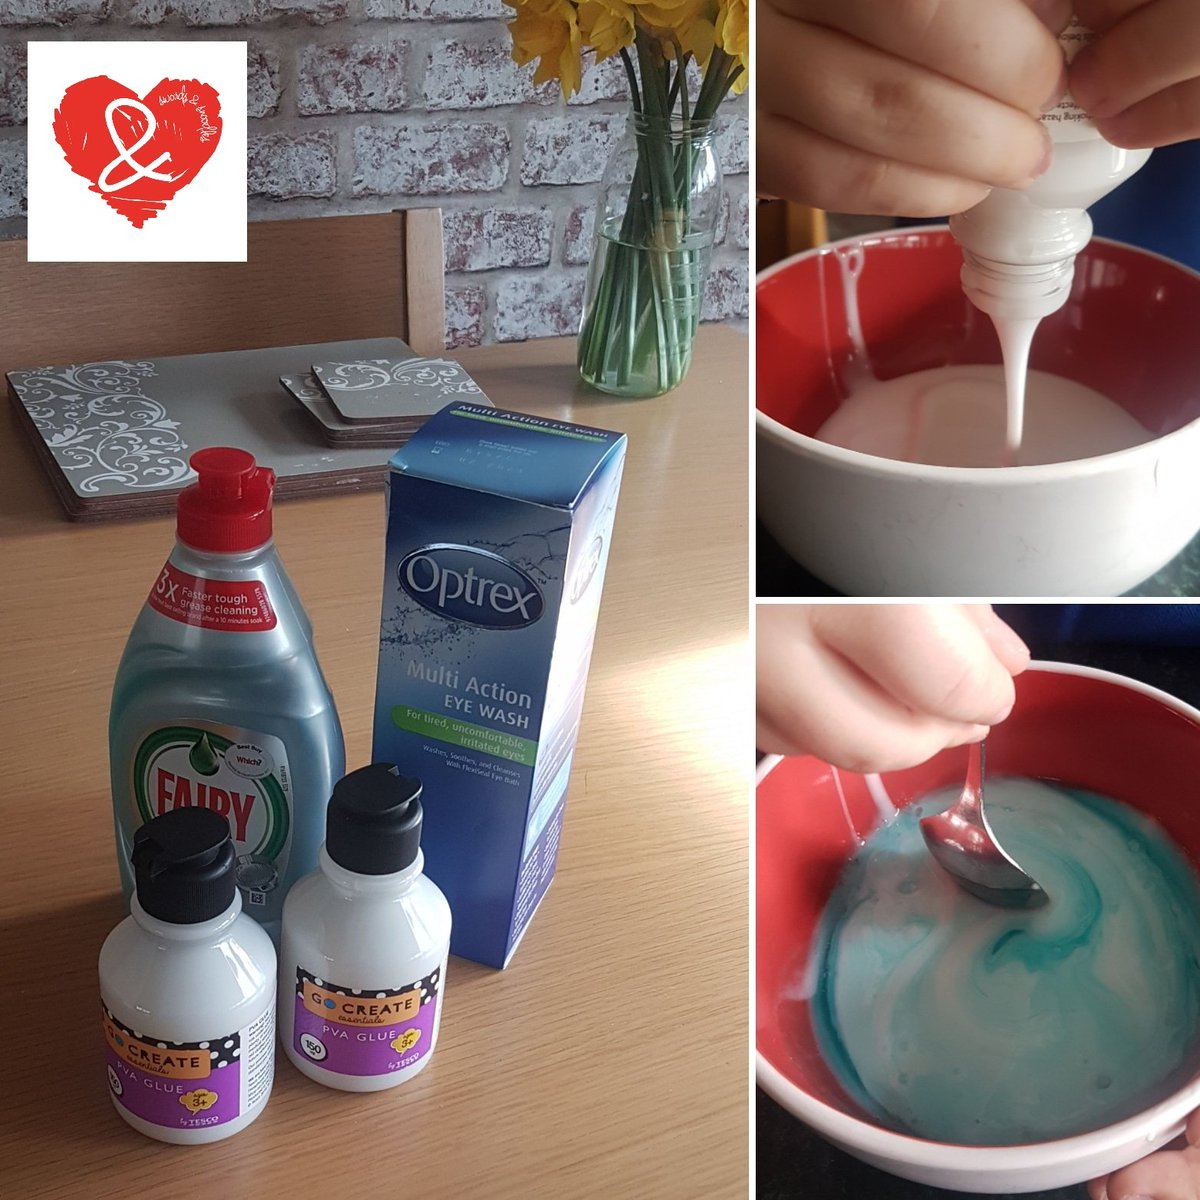 Diyslime hashtag on twitter 0 replies 0 retweets 1 like ccuart Image collections